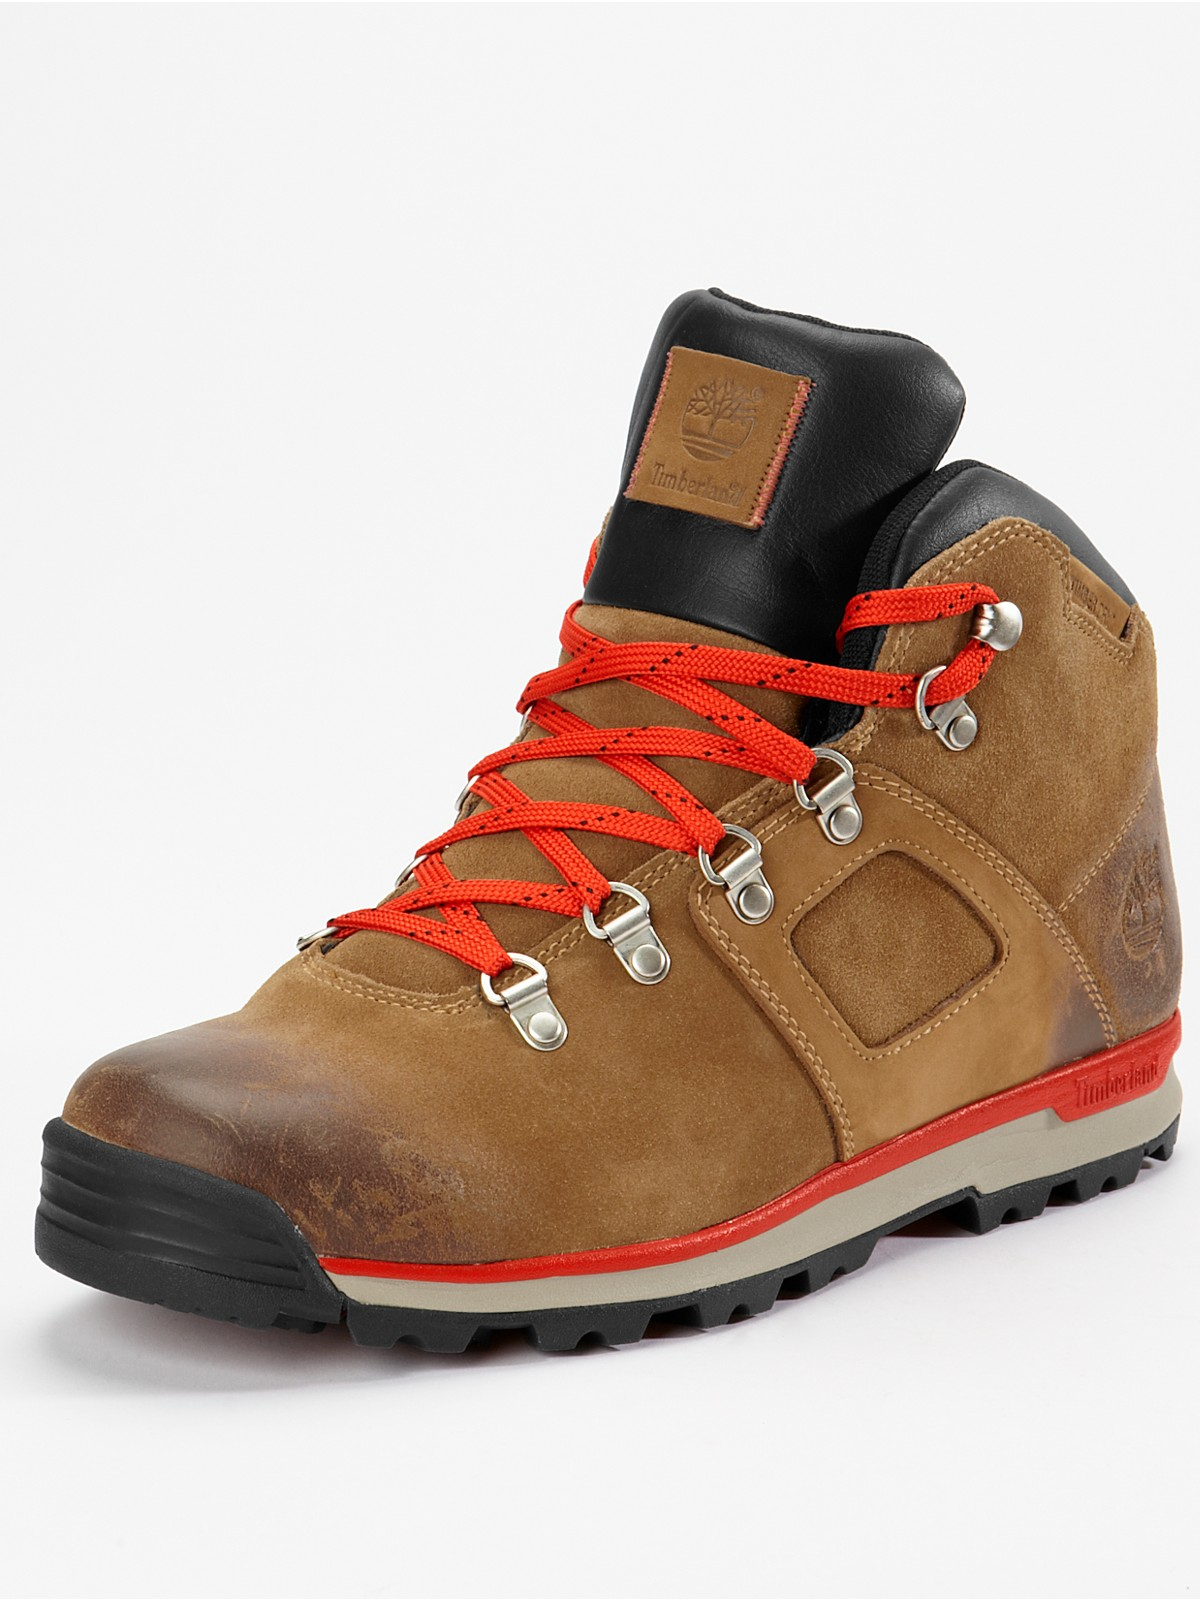 Timberland Boots For Men 2012 Timberland Gt Scramble...